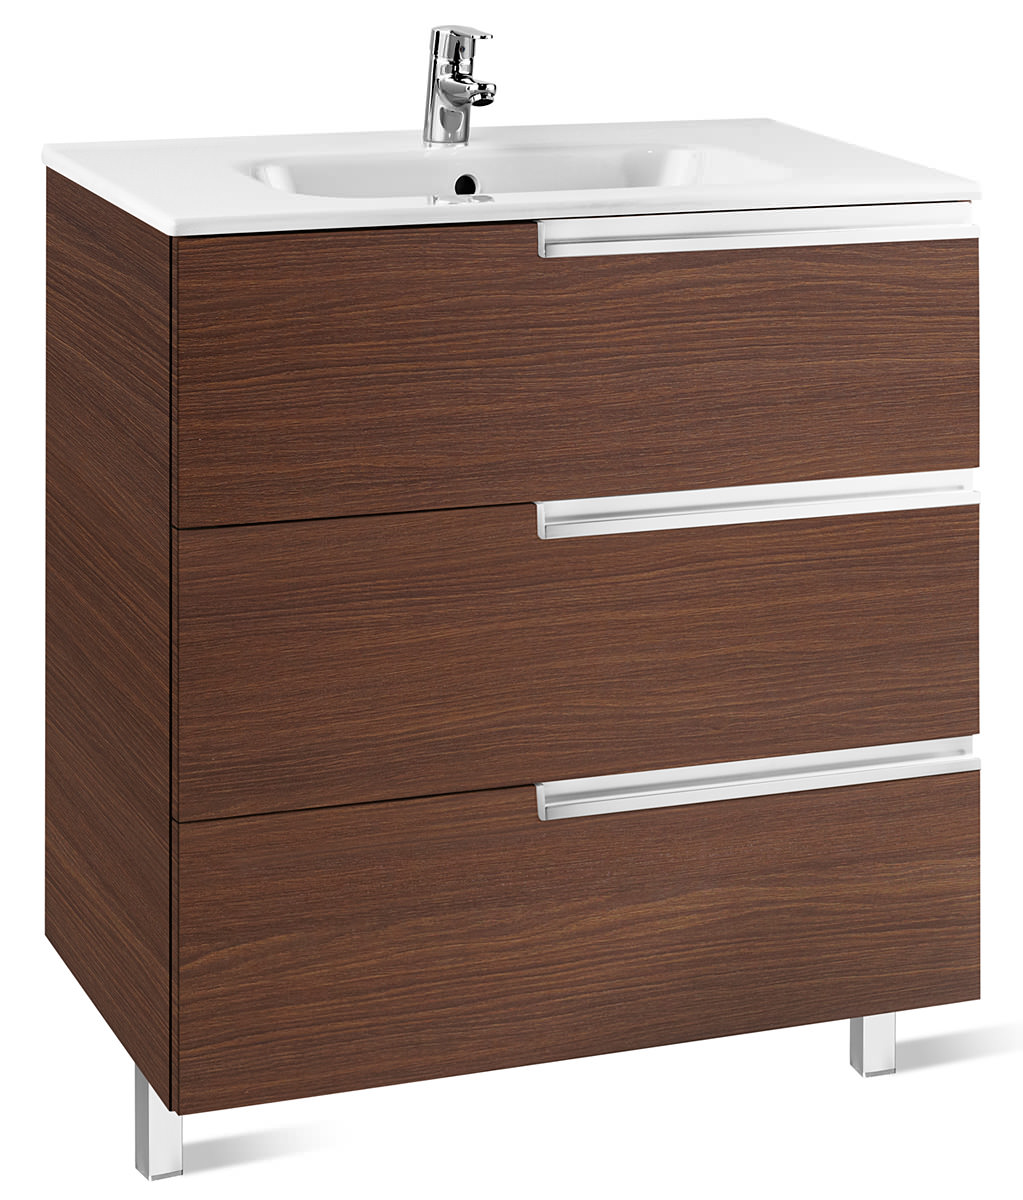 Roca victoria n unik basin and unit with 3 drawers 700mm for Kitchen cabinets 700mm